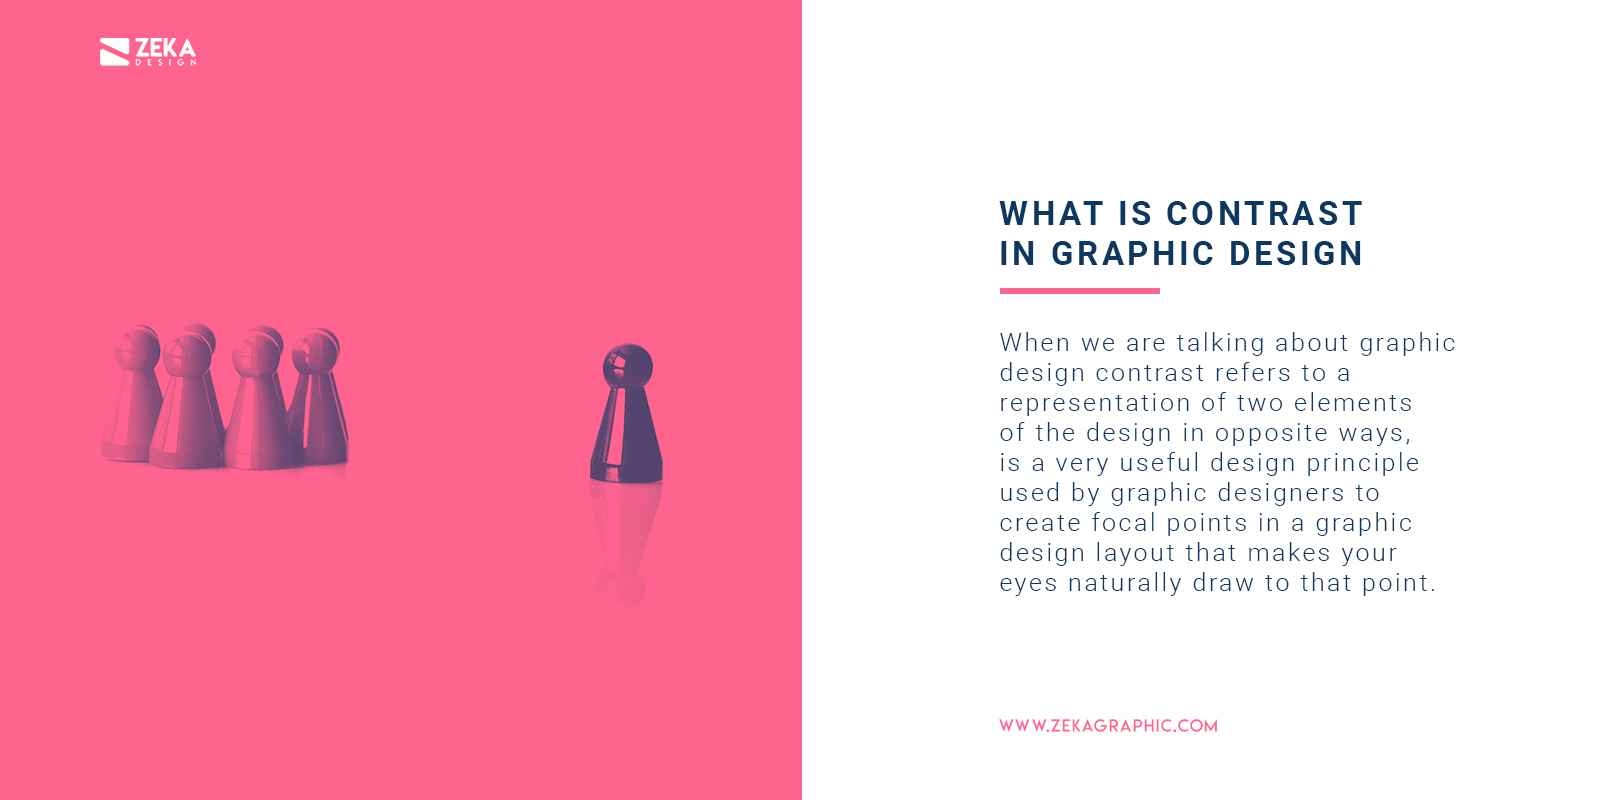 What is Contrast in Graphic Design